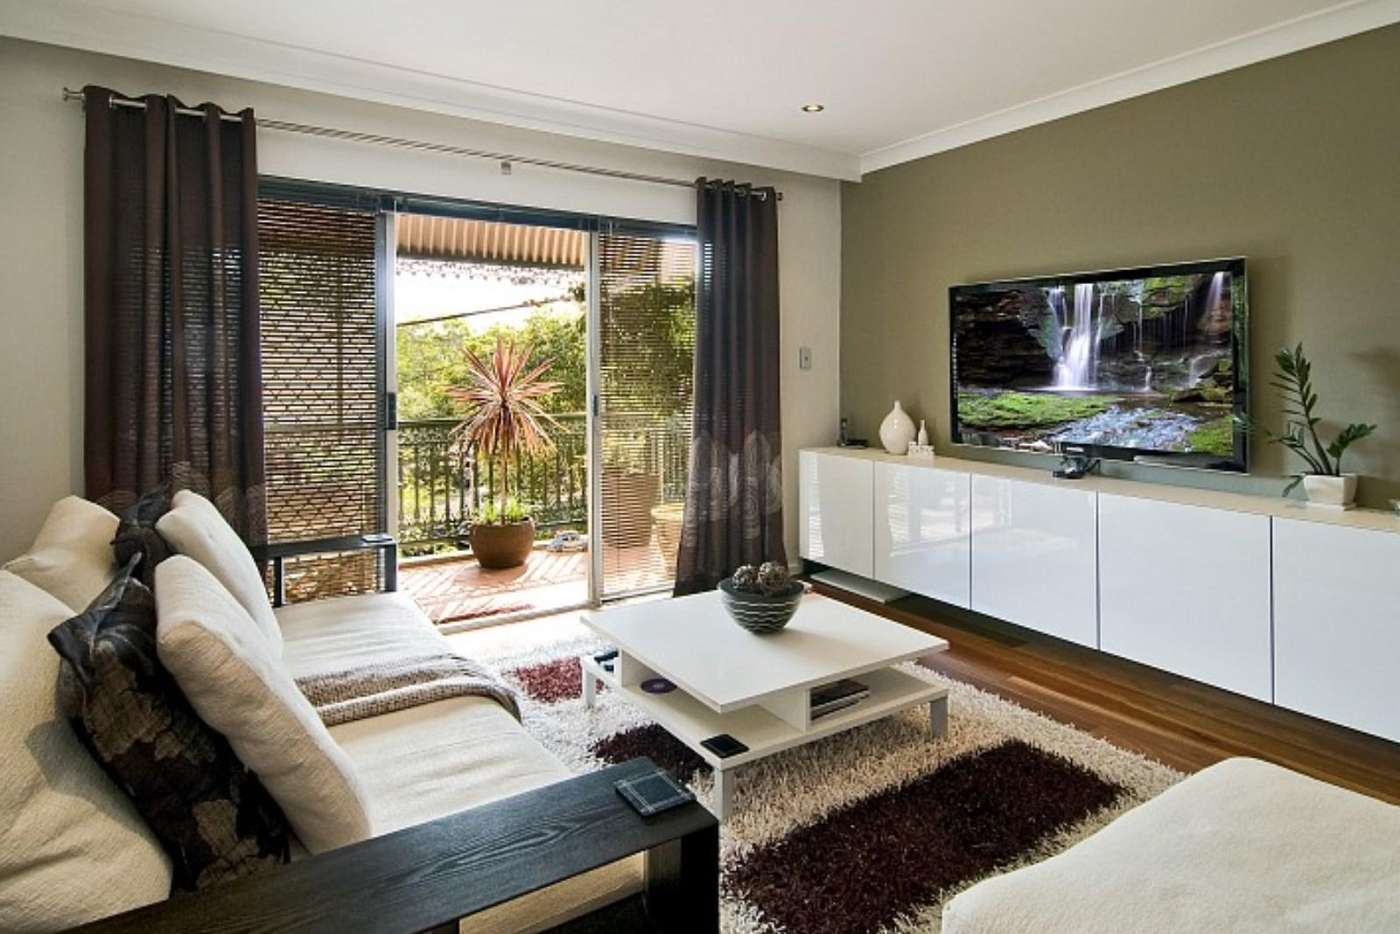 Main view of Homely apartment listing, 78/128 George Street, Redfern NSW 2016